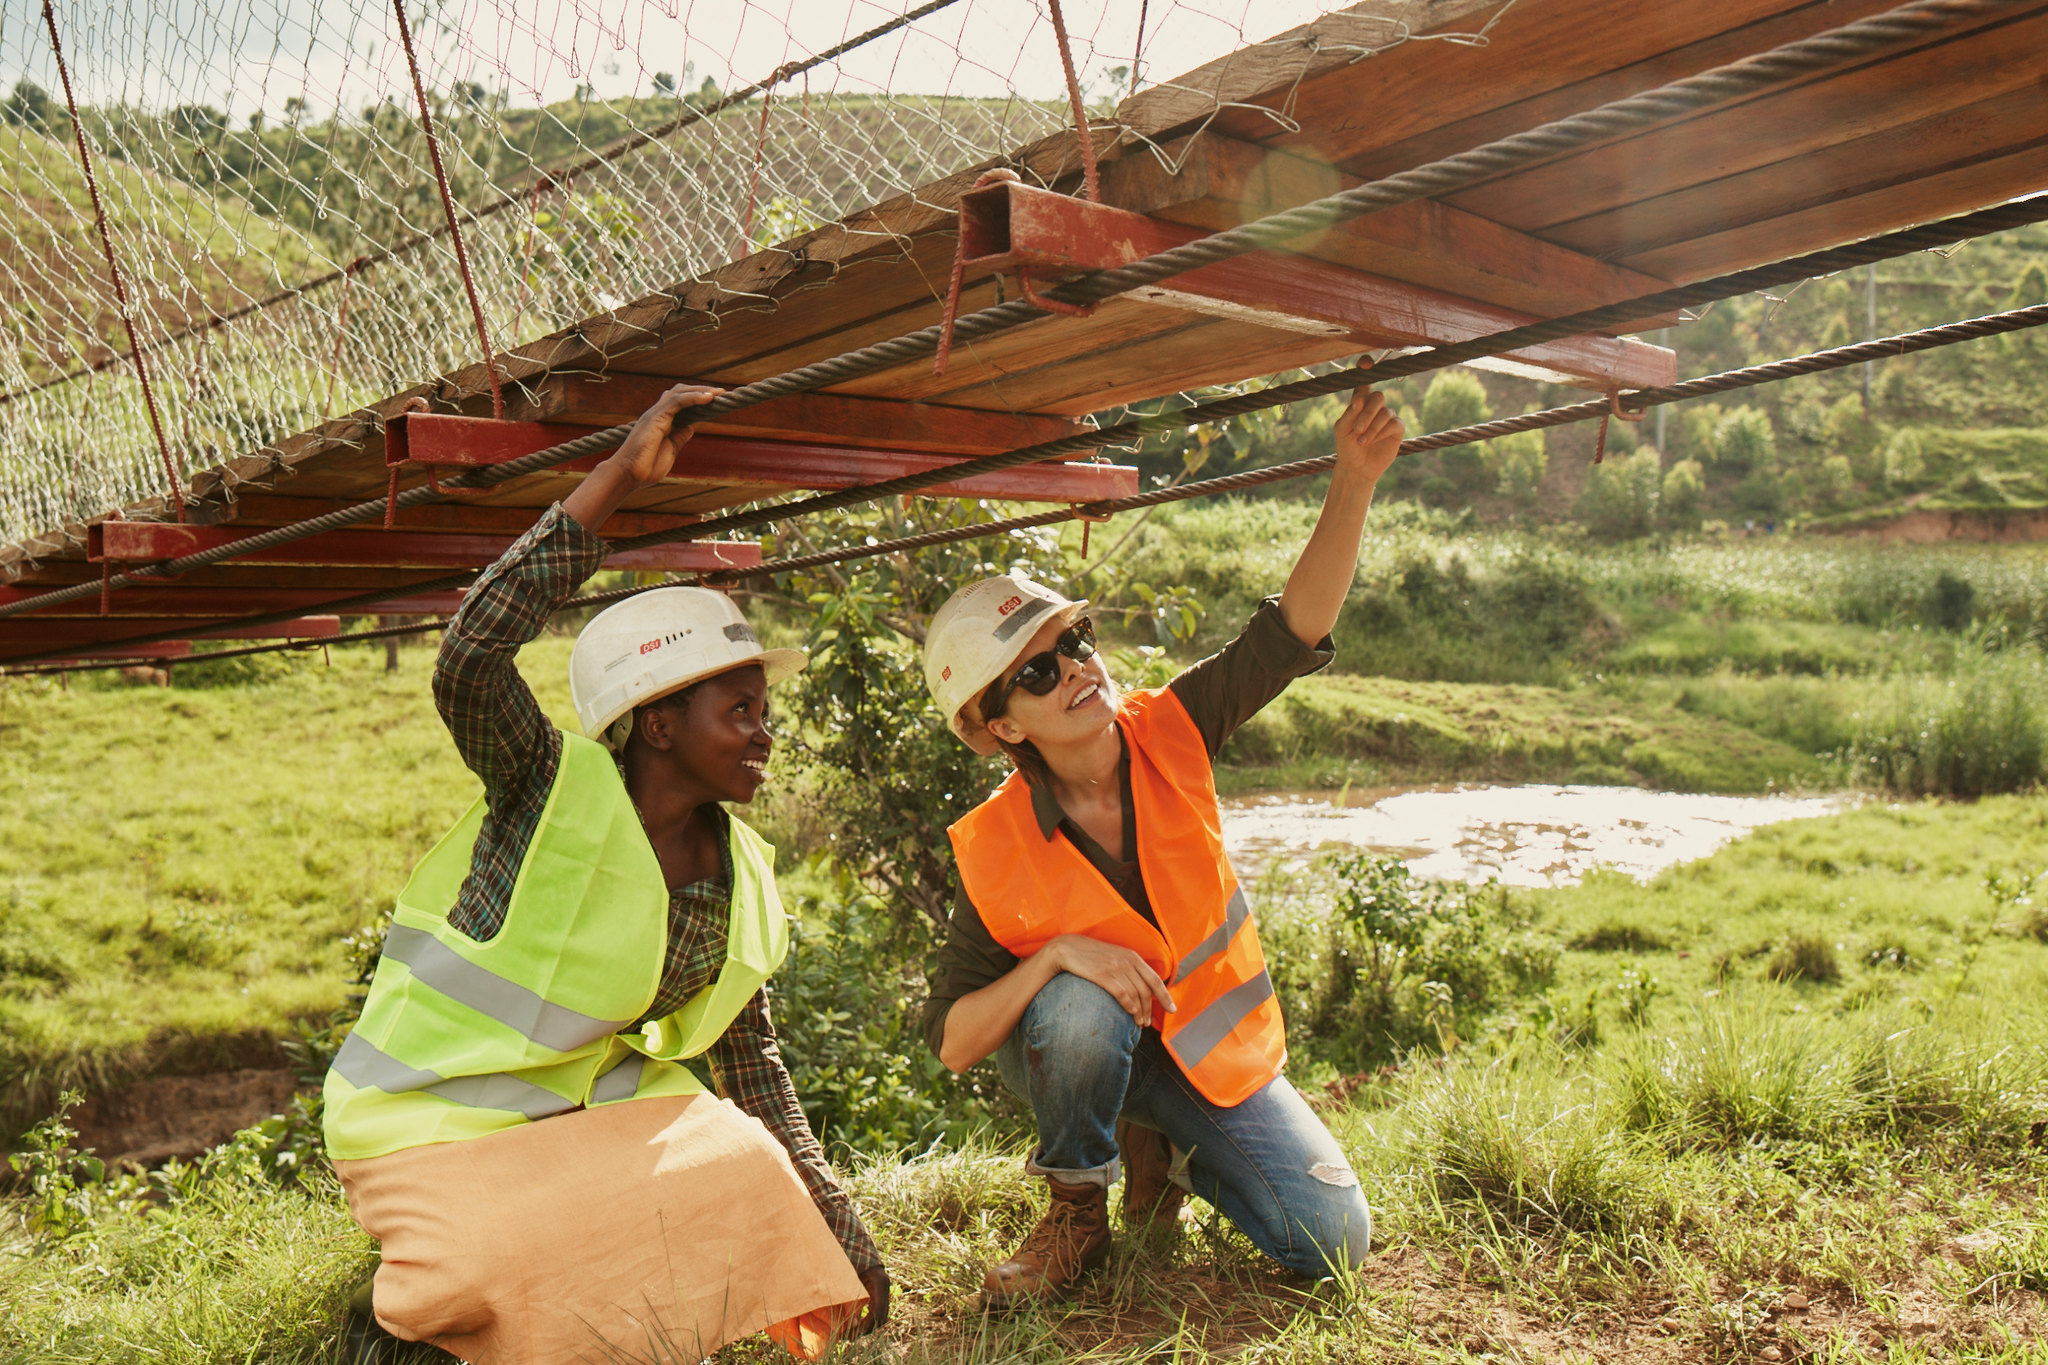 Engineers inspect cables of a B2P foot bridge in Rwanda.